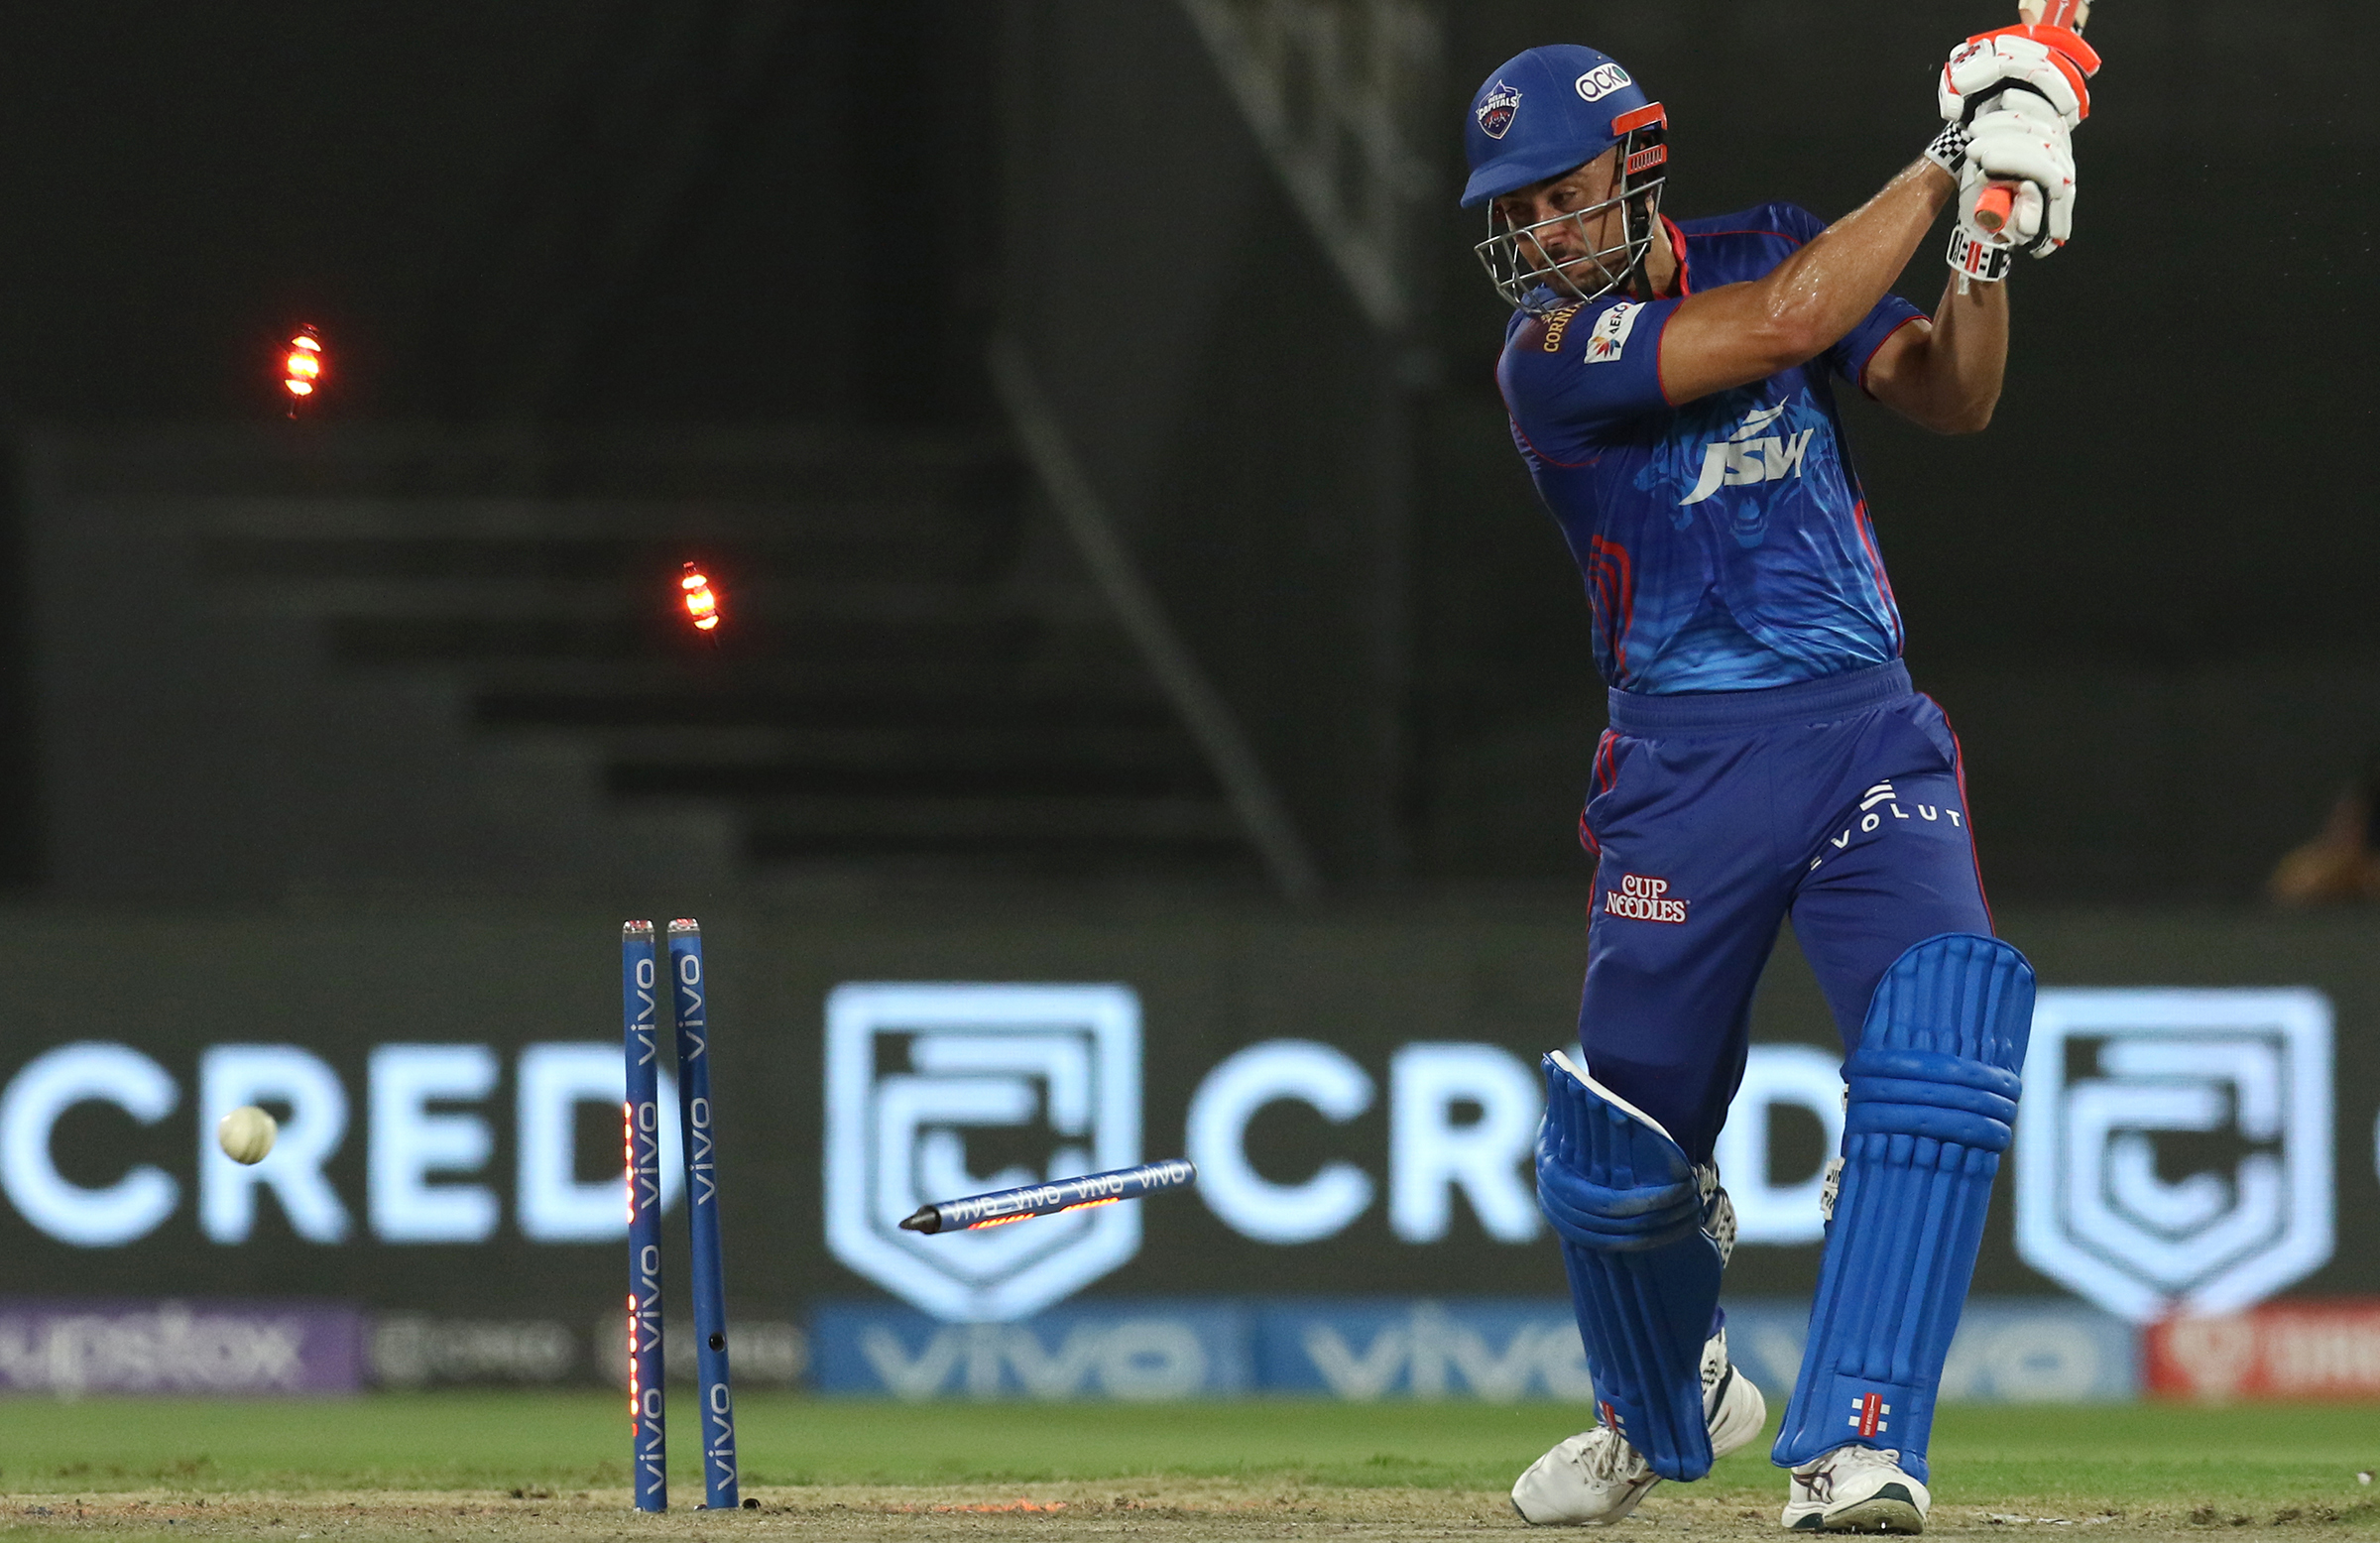 Stoinis was bowled for 18 in Delhi's defeat // BCCI/IPL